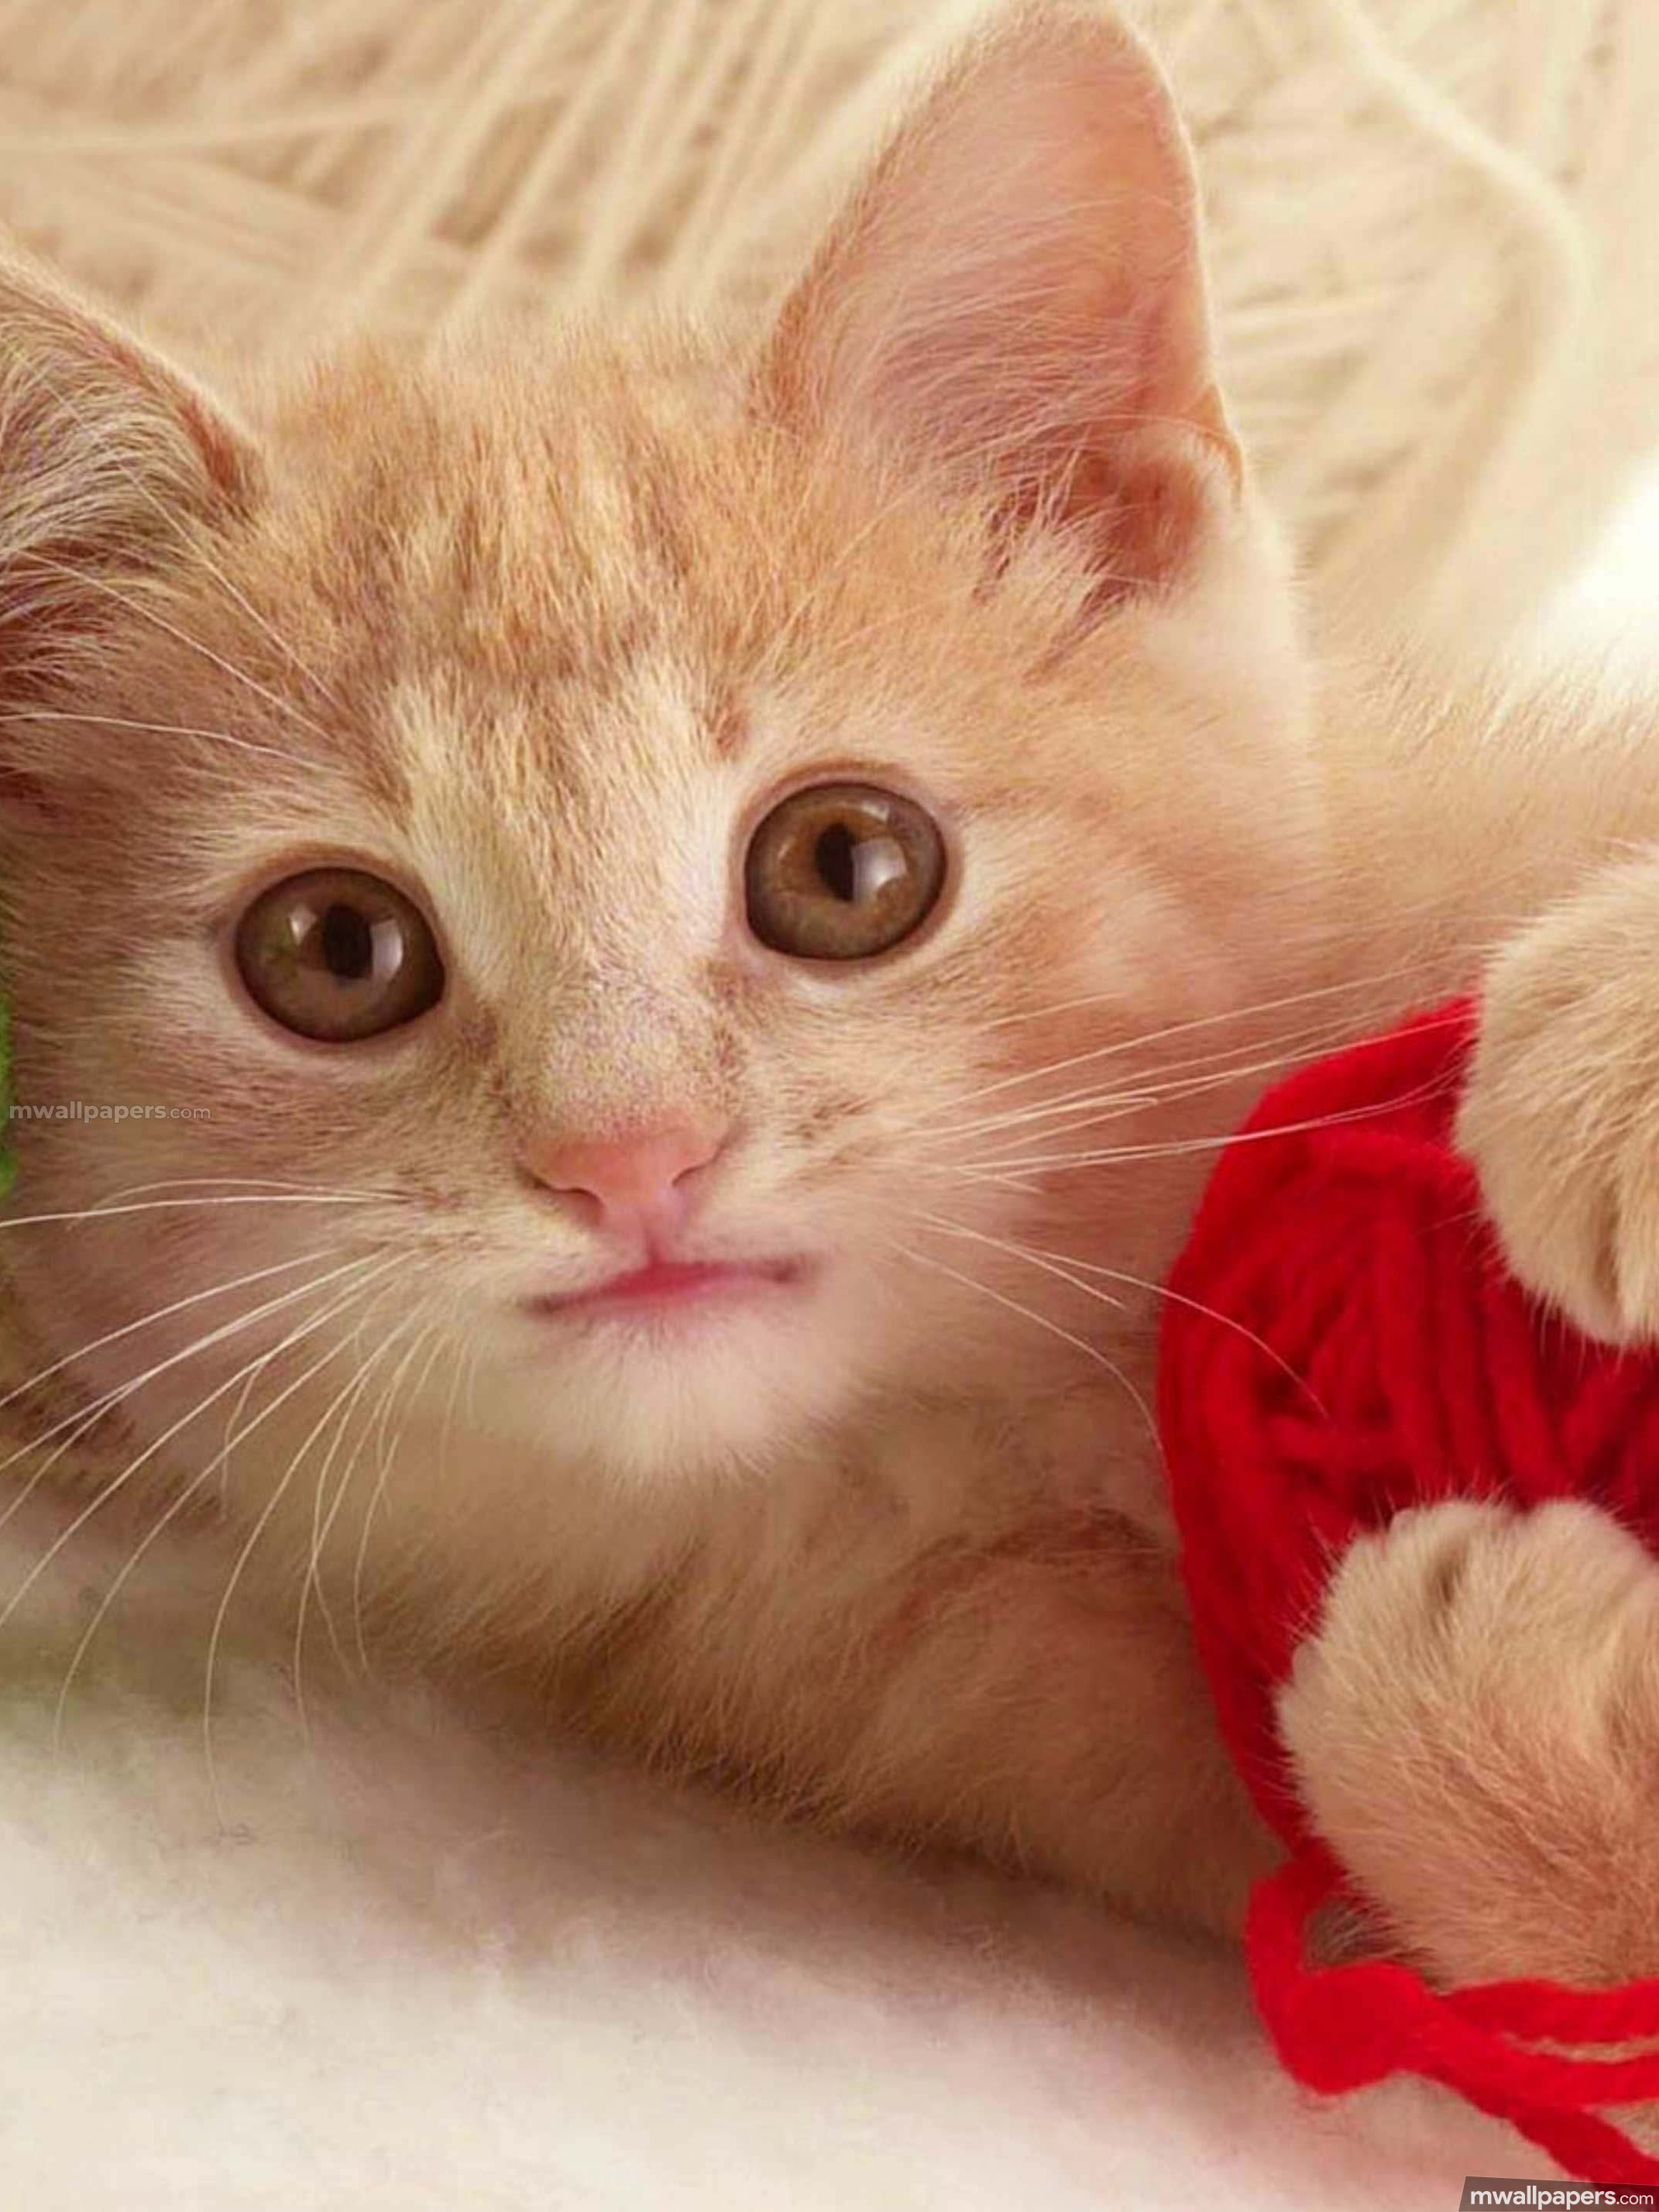 Cats Cute Hd Photos 1080p Androidiphoneipad Hd Wallpapers